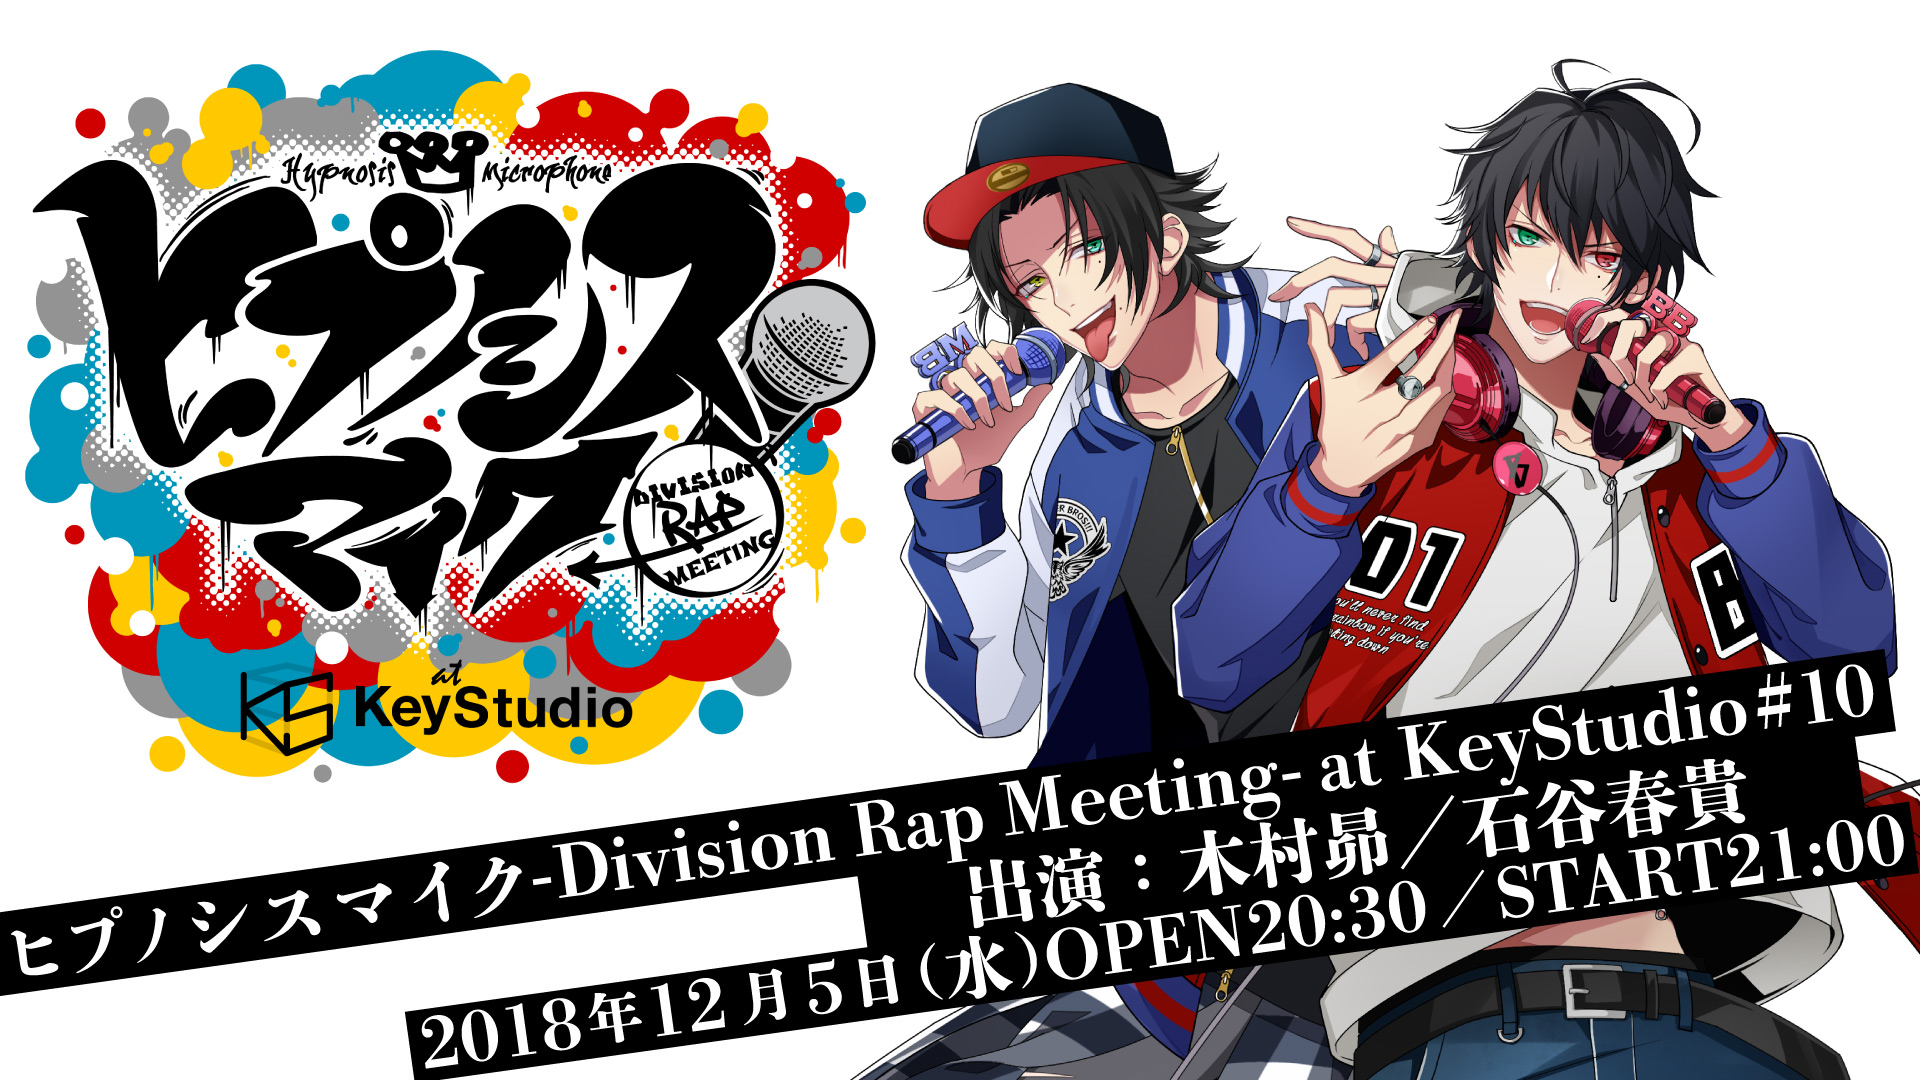 ヒプノシスマイク -Division Rap Meeting- at KeyStudio #10